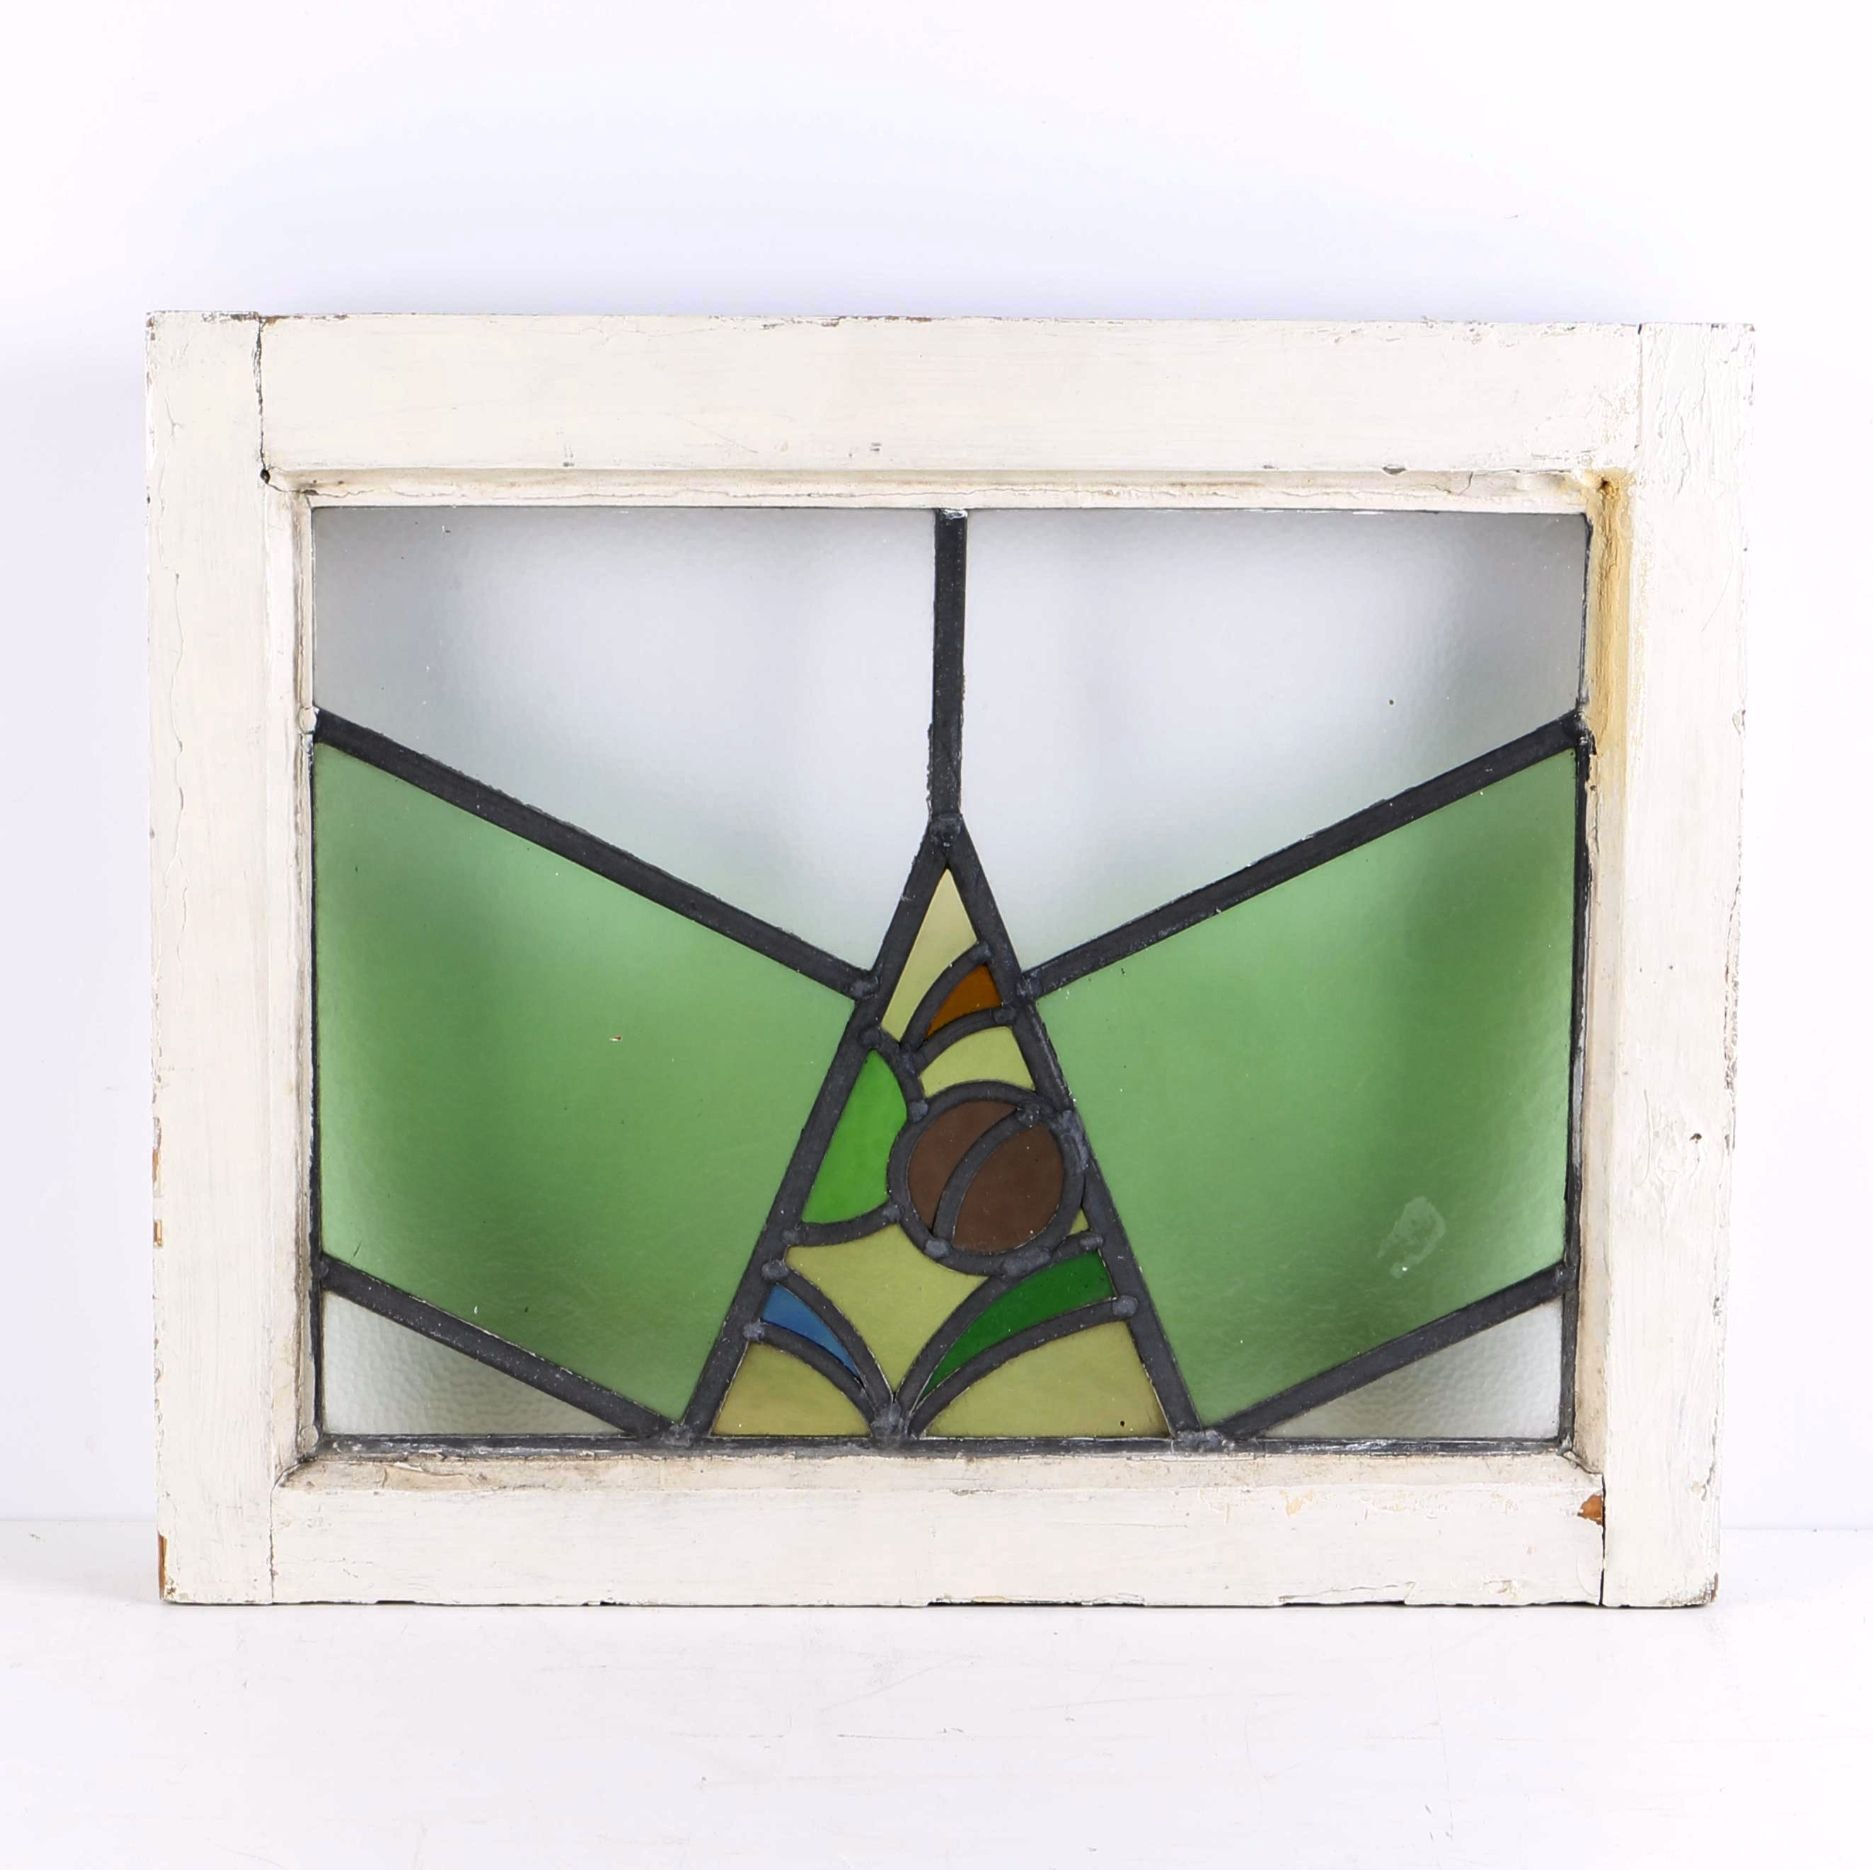 Vintage Wooden Window Frame With Stained Glass